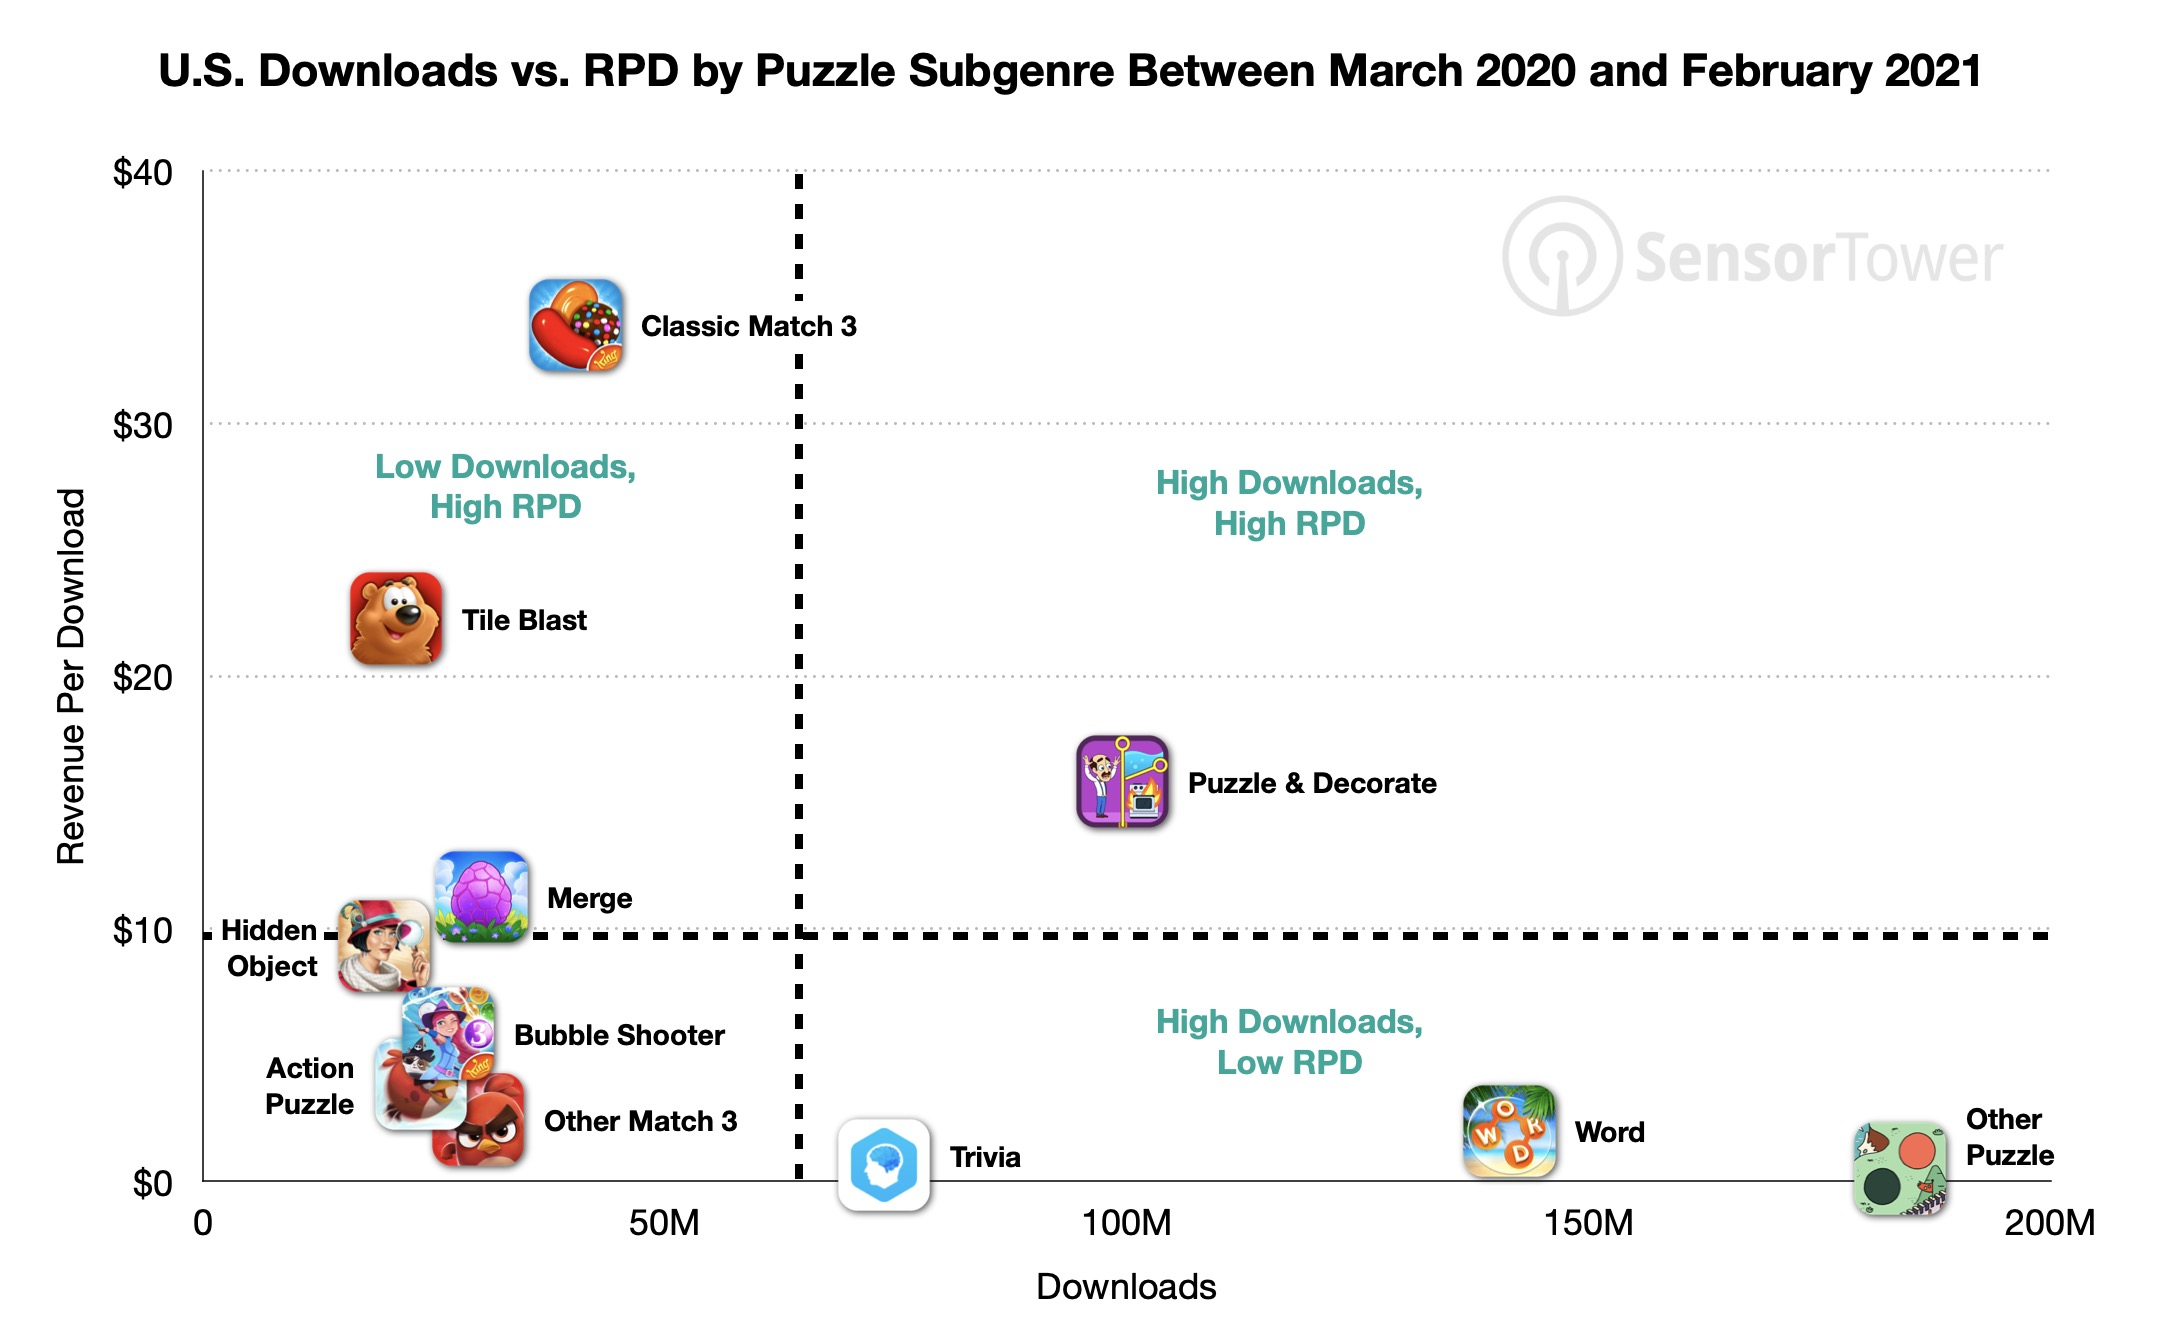 Downloads in US Vs. RPD by puzzle game subgenre between March 2020 and February 2021